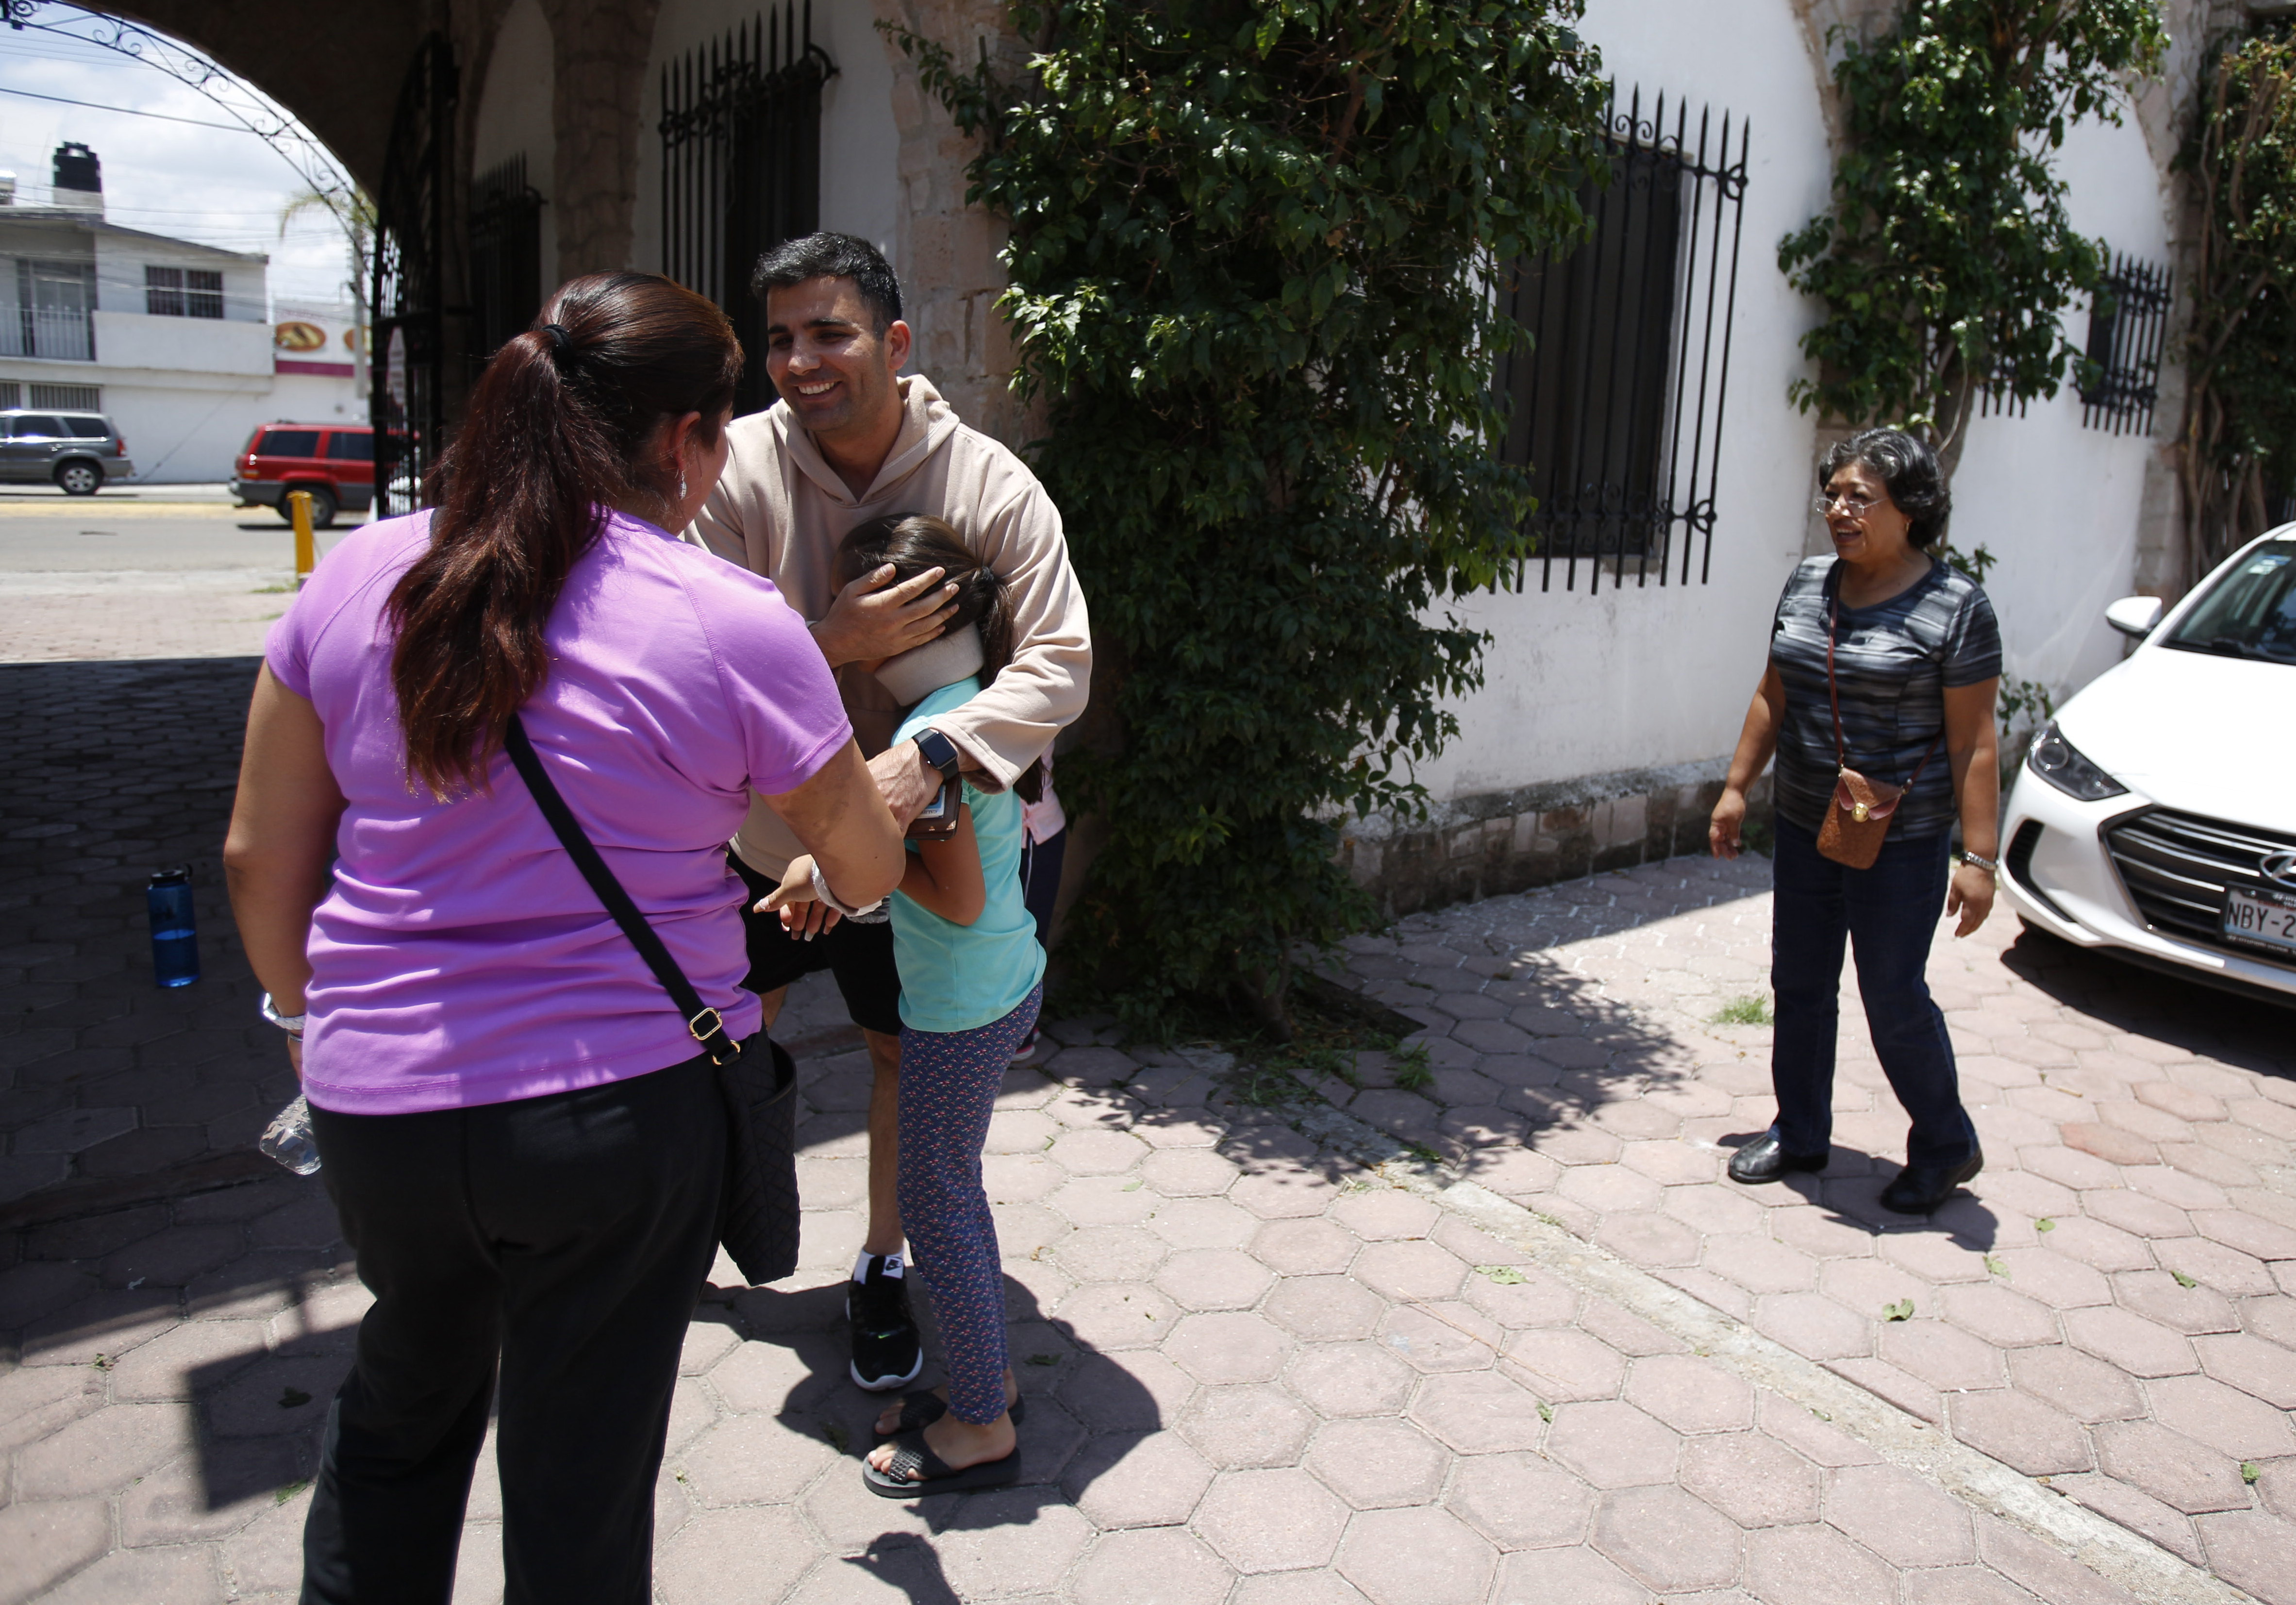 Ramin Parsa of Los Angeles hugs a woman and her two children who were fellow passengers aboard Aeromexico flight 2431, as they meet again at an office where U.S. citizens who lost their passports in the crash were receiving help from a consular official, in Durango, Mexico Wednesday, Aug. 1, 2018. (Rebecca Blackwell/AP)